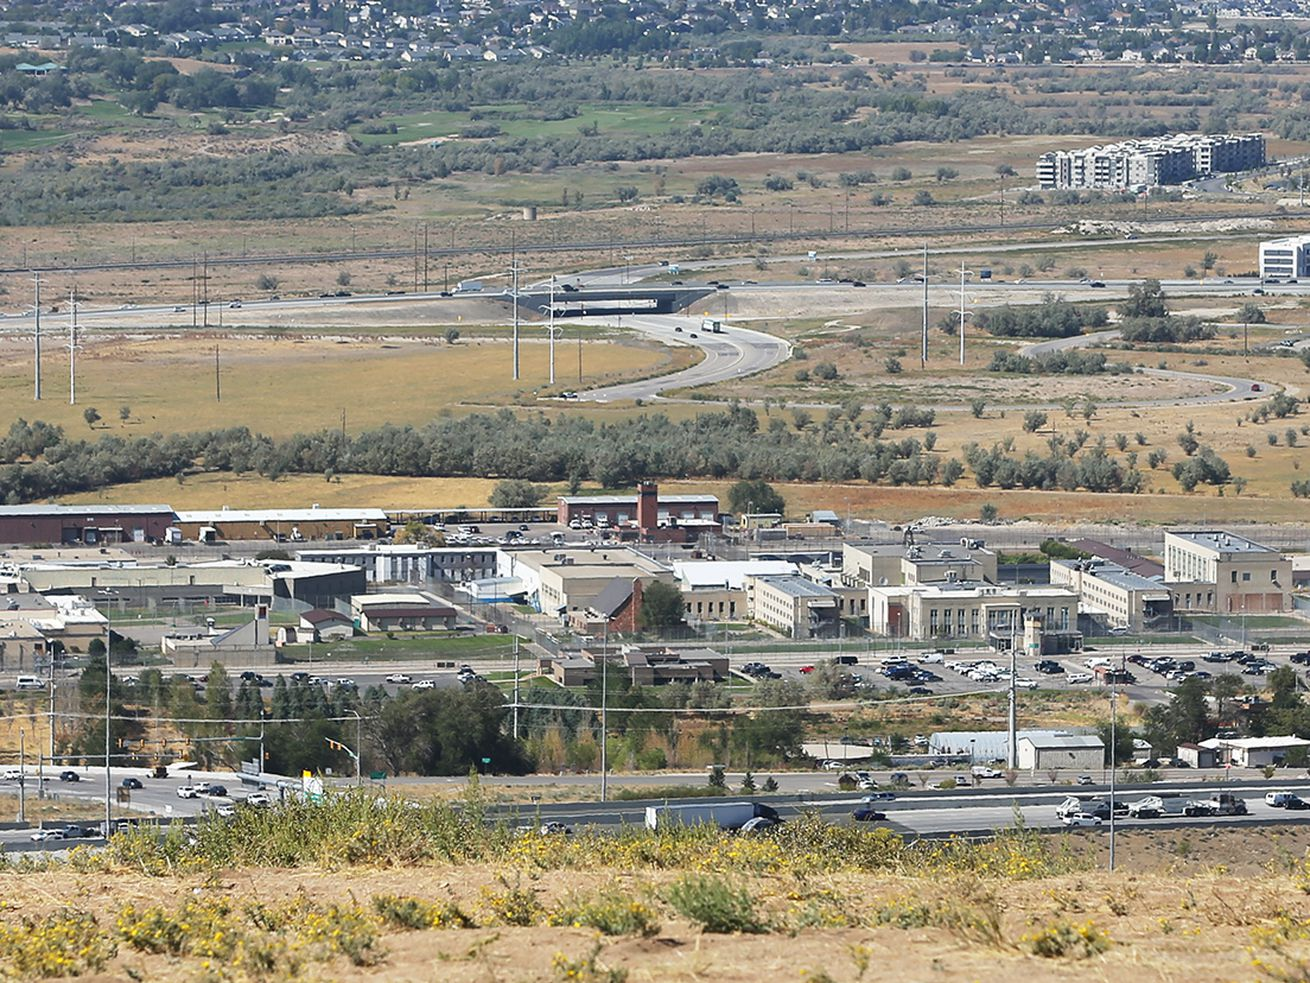 A section of the Utah State Prison at the Point of the Mountain in Draper is pictured on Friday, Sept. 11, 2020.